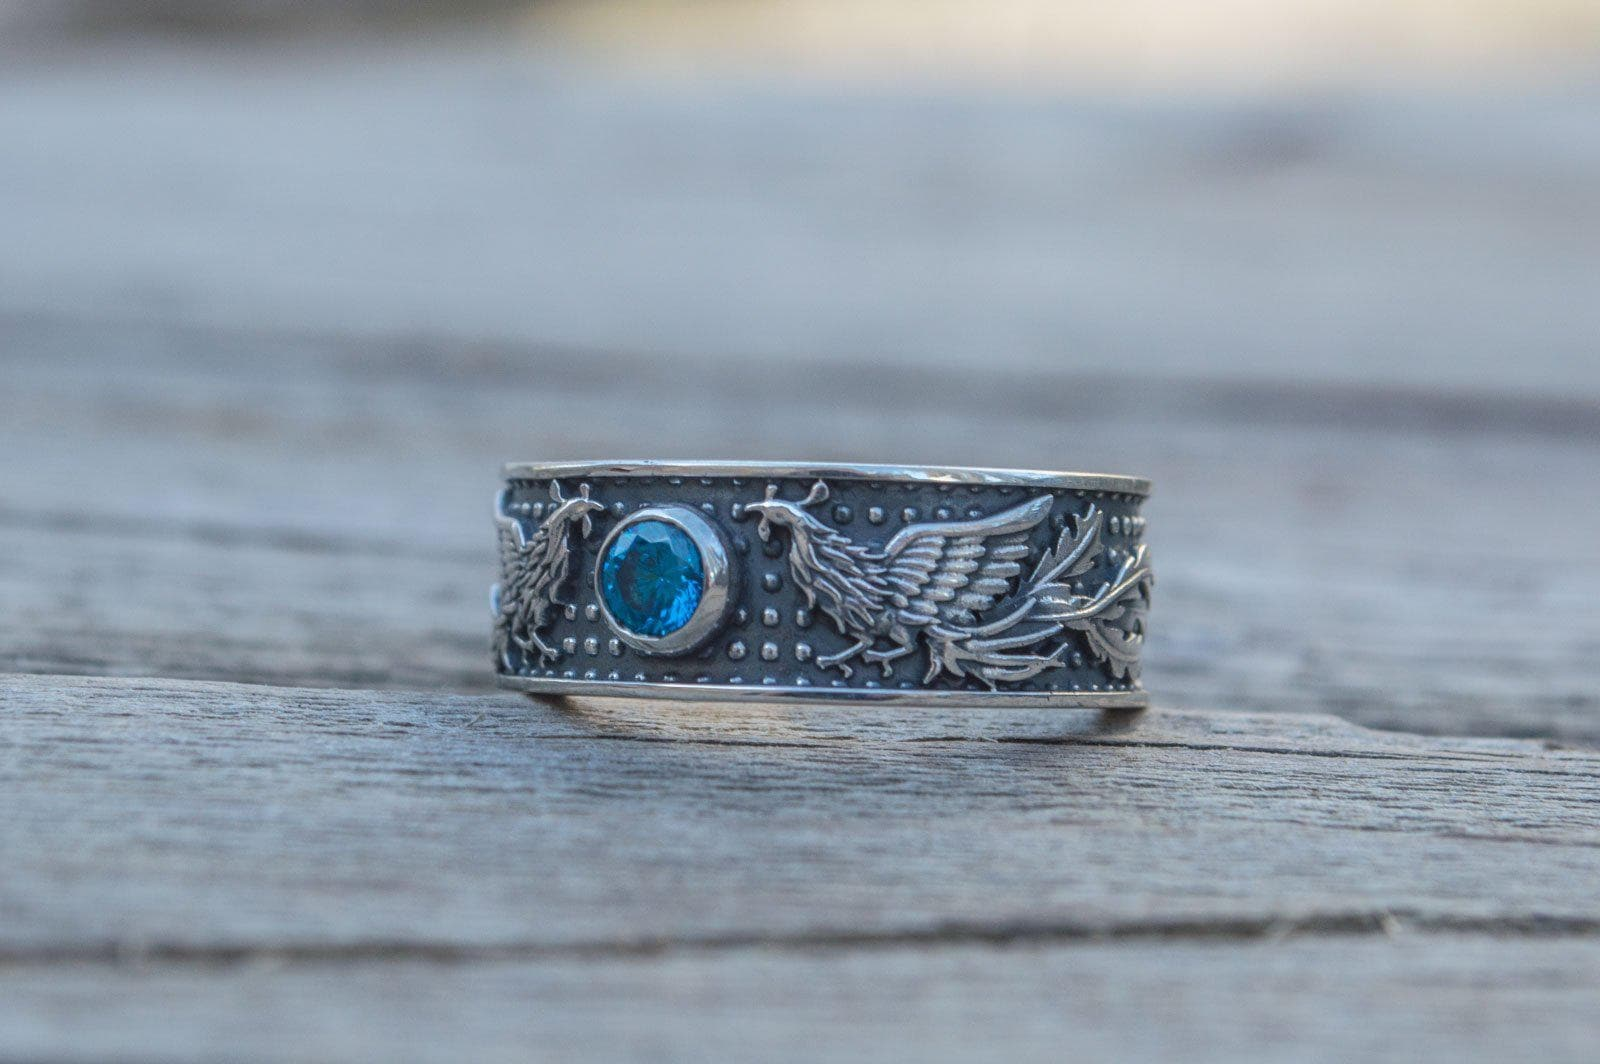 Rings Phoenix Firebird Sterling Silver Ring with Blue Cubic Zirconia Ancient Treasures Ancientreasures Viking Odin Thor Mjolnir Celtic Ancient Egypt Norse Norse Mythology